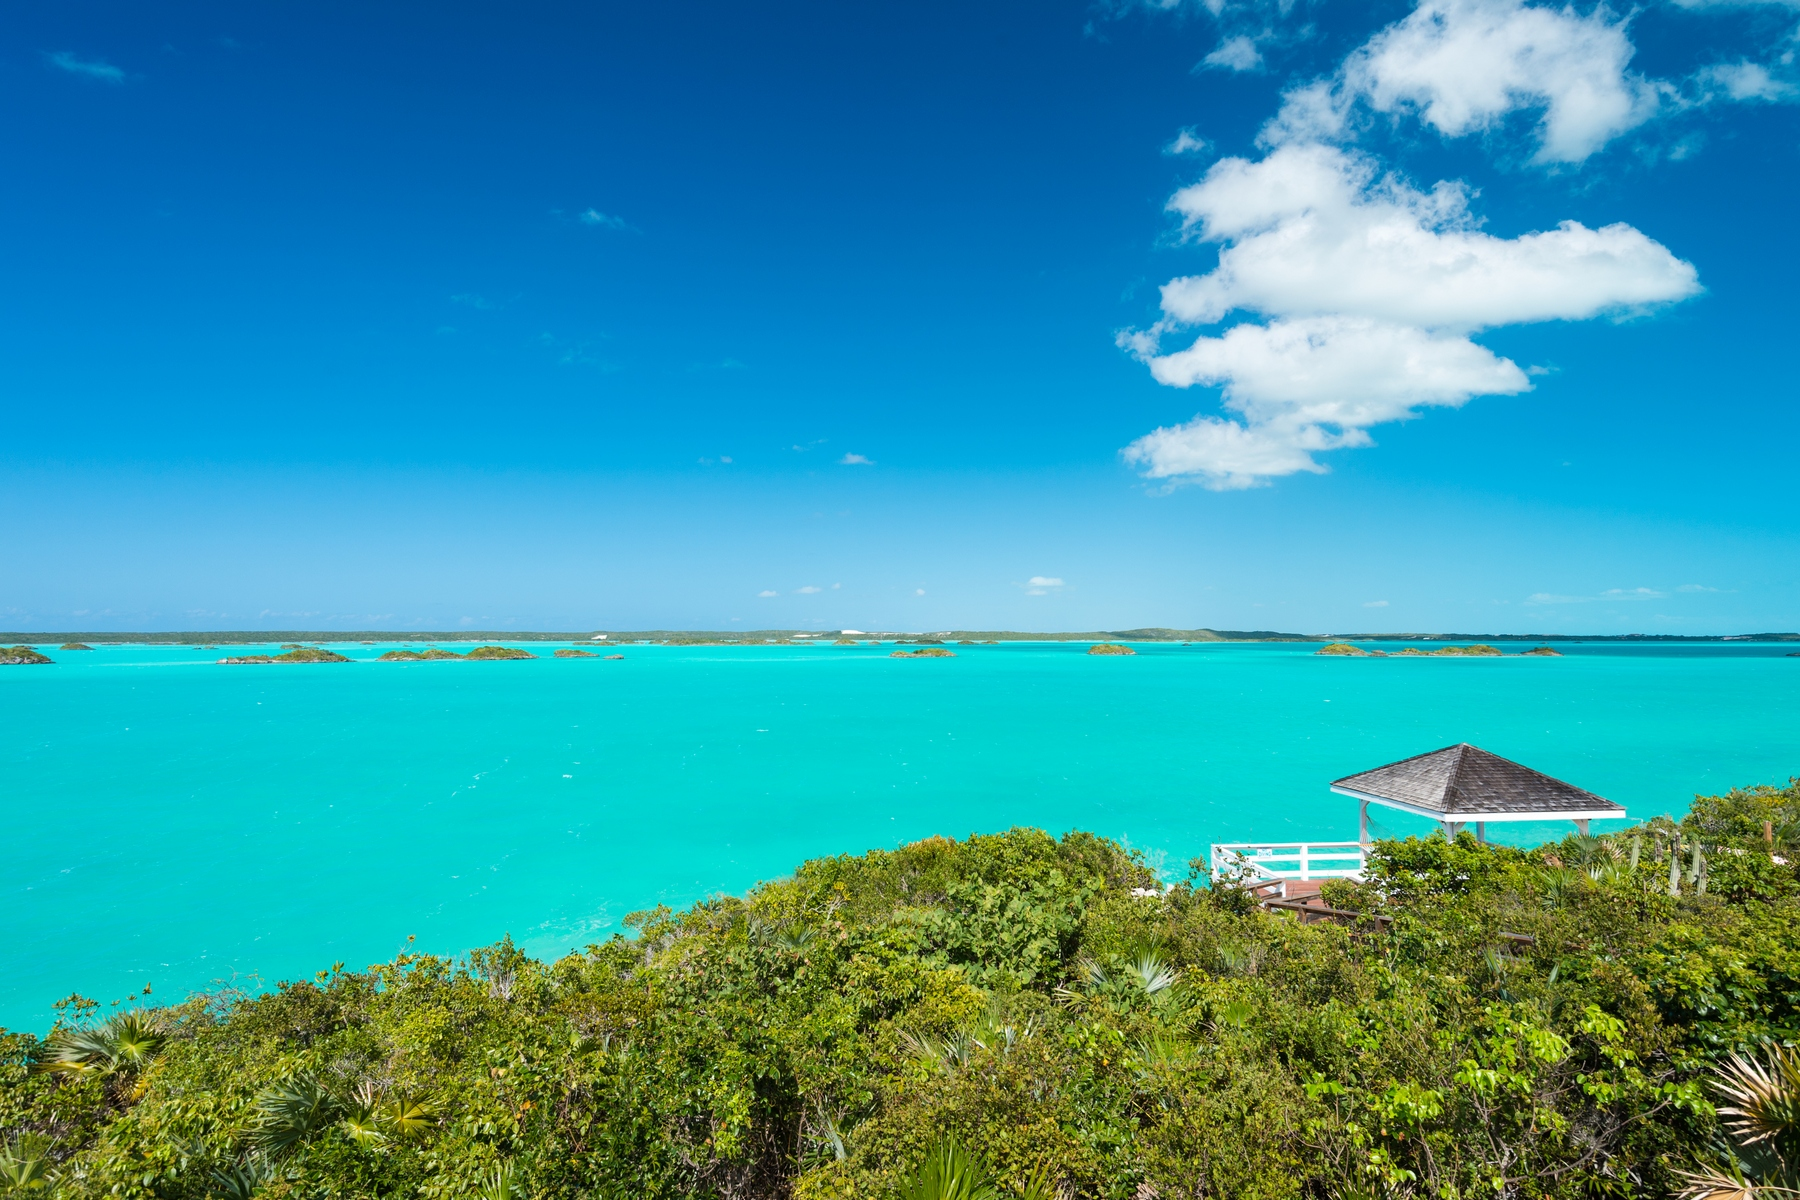 Single Family Home for Sale at Aqua View Villa Waterfront Chalk Sound, TCI Turks And Caicos Islands